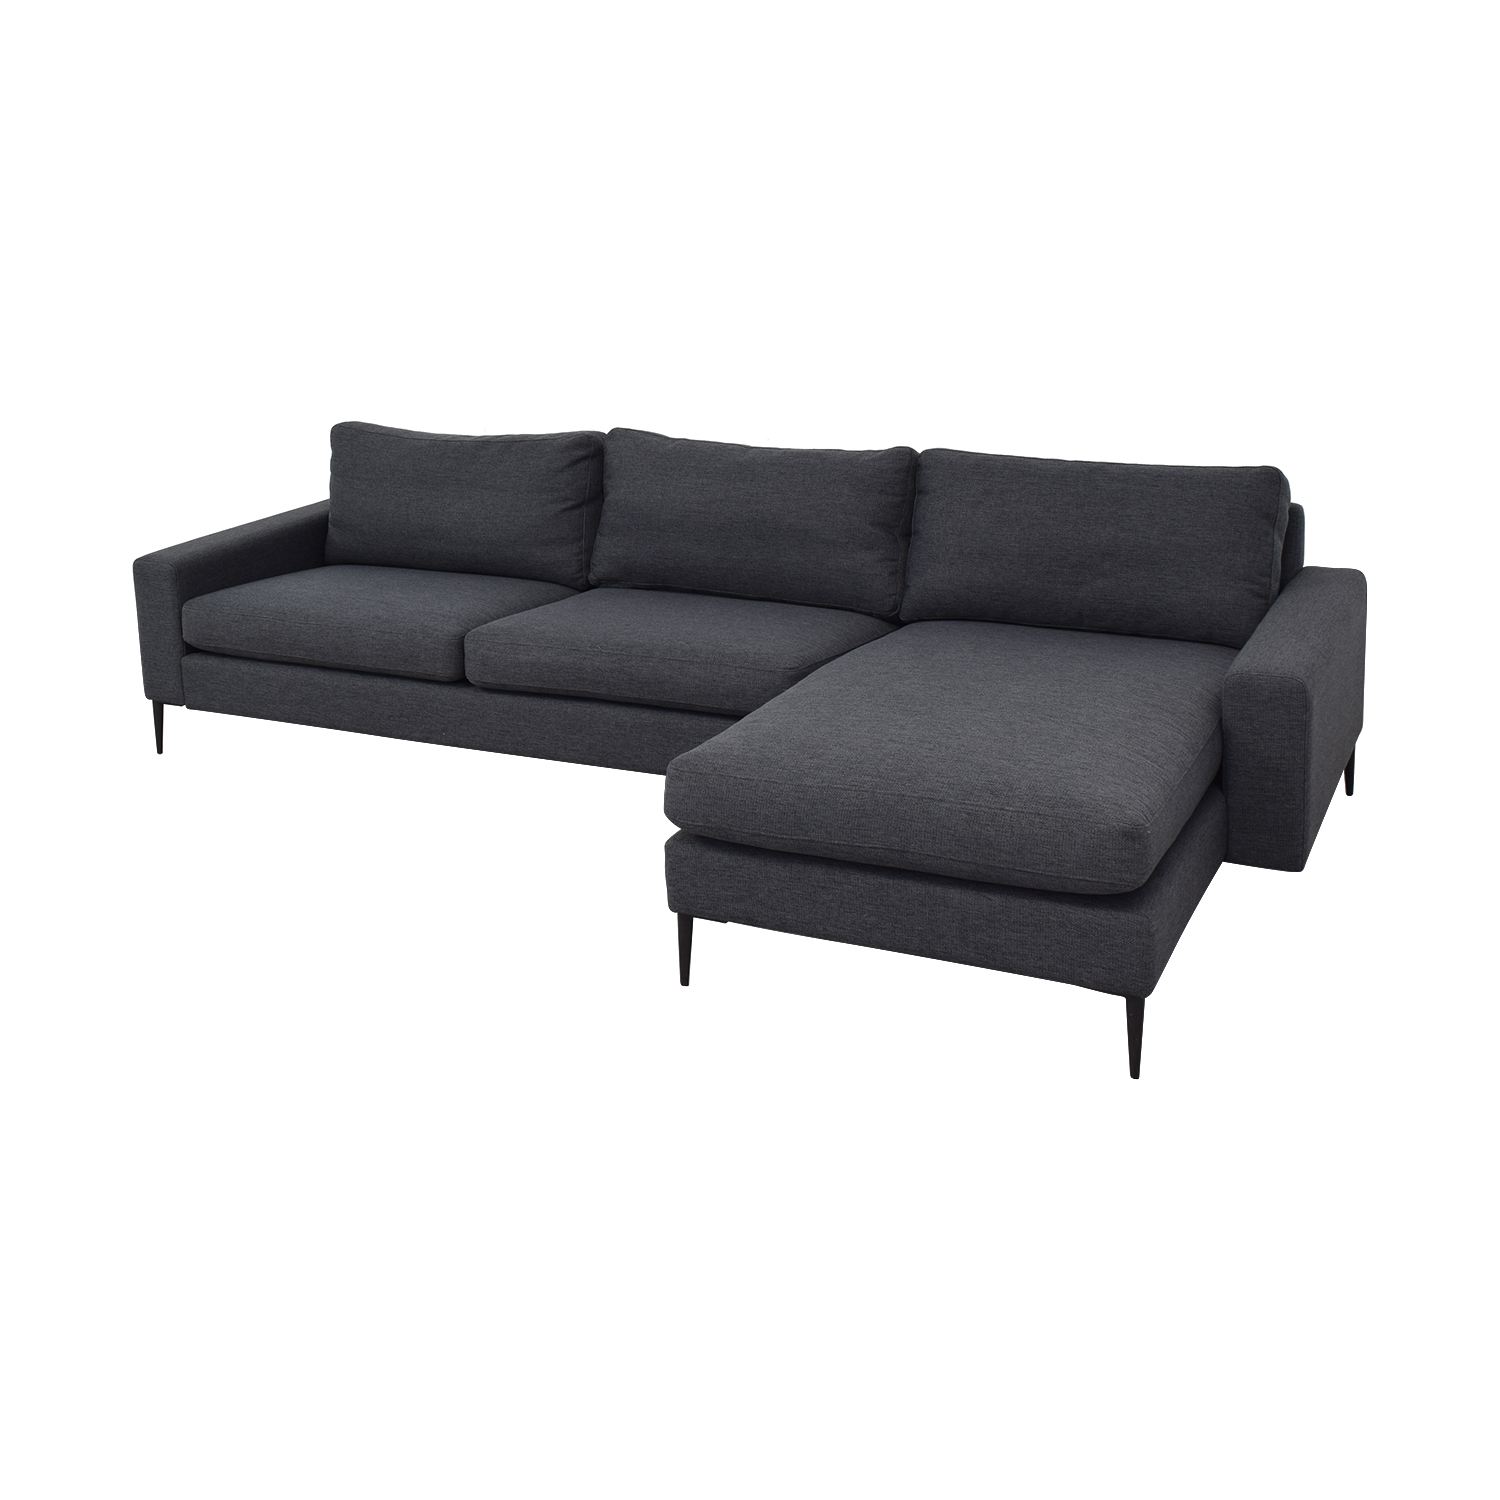 Article Article Sven Right Sectional price